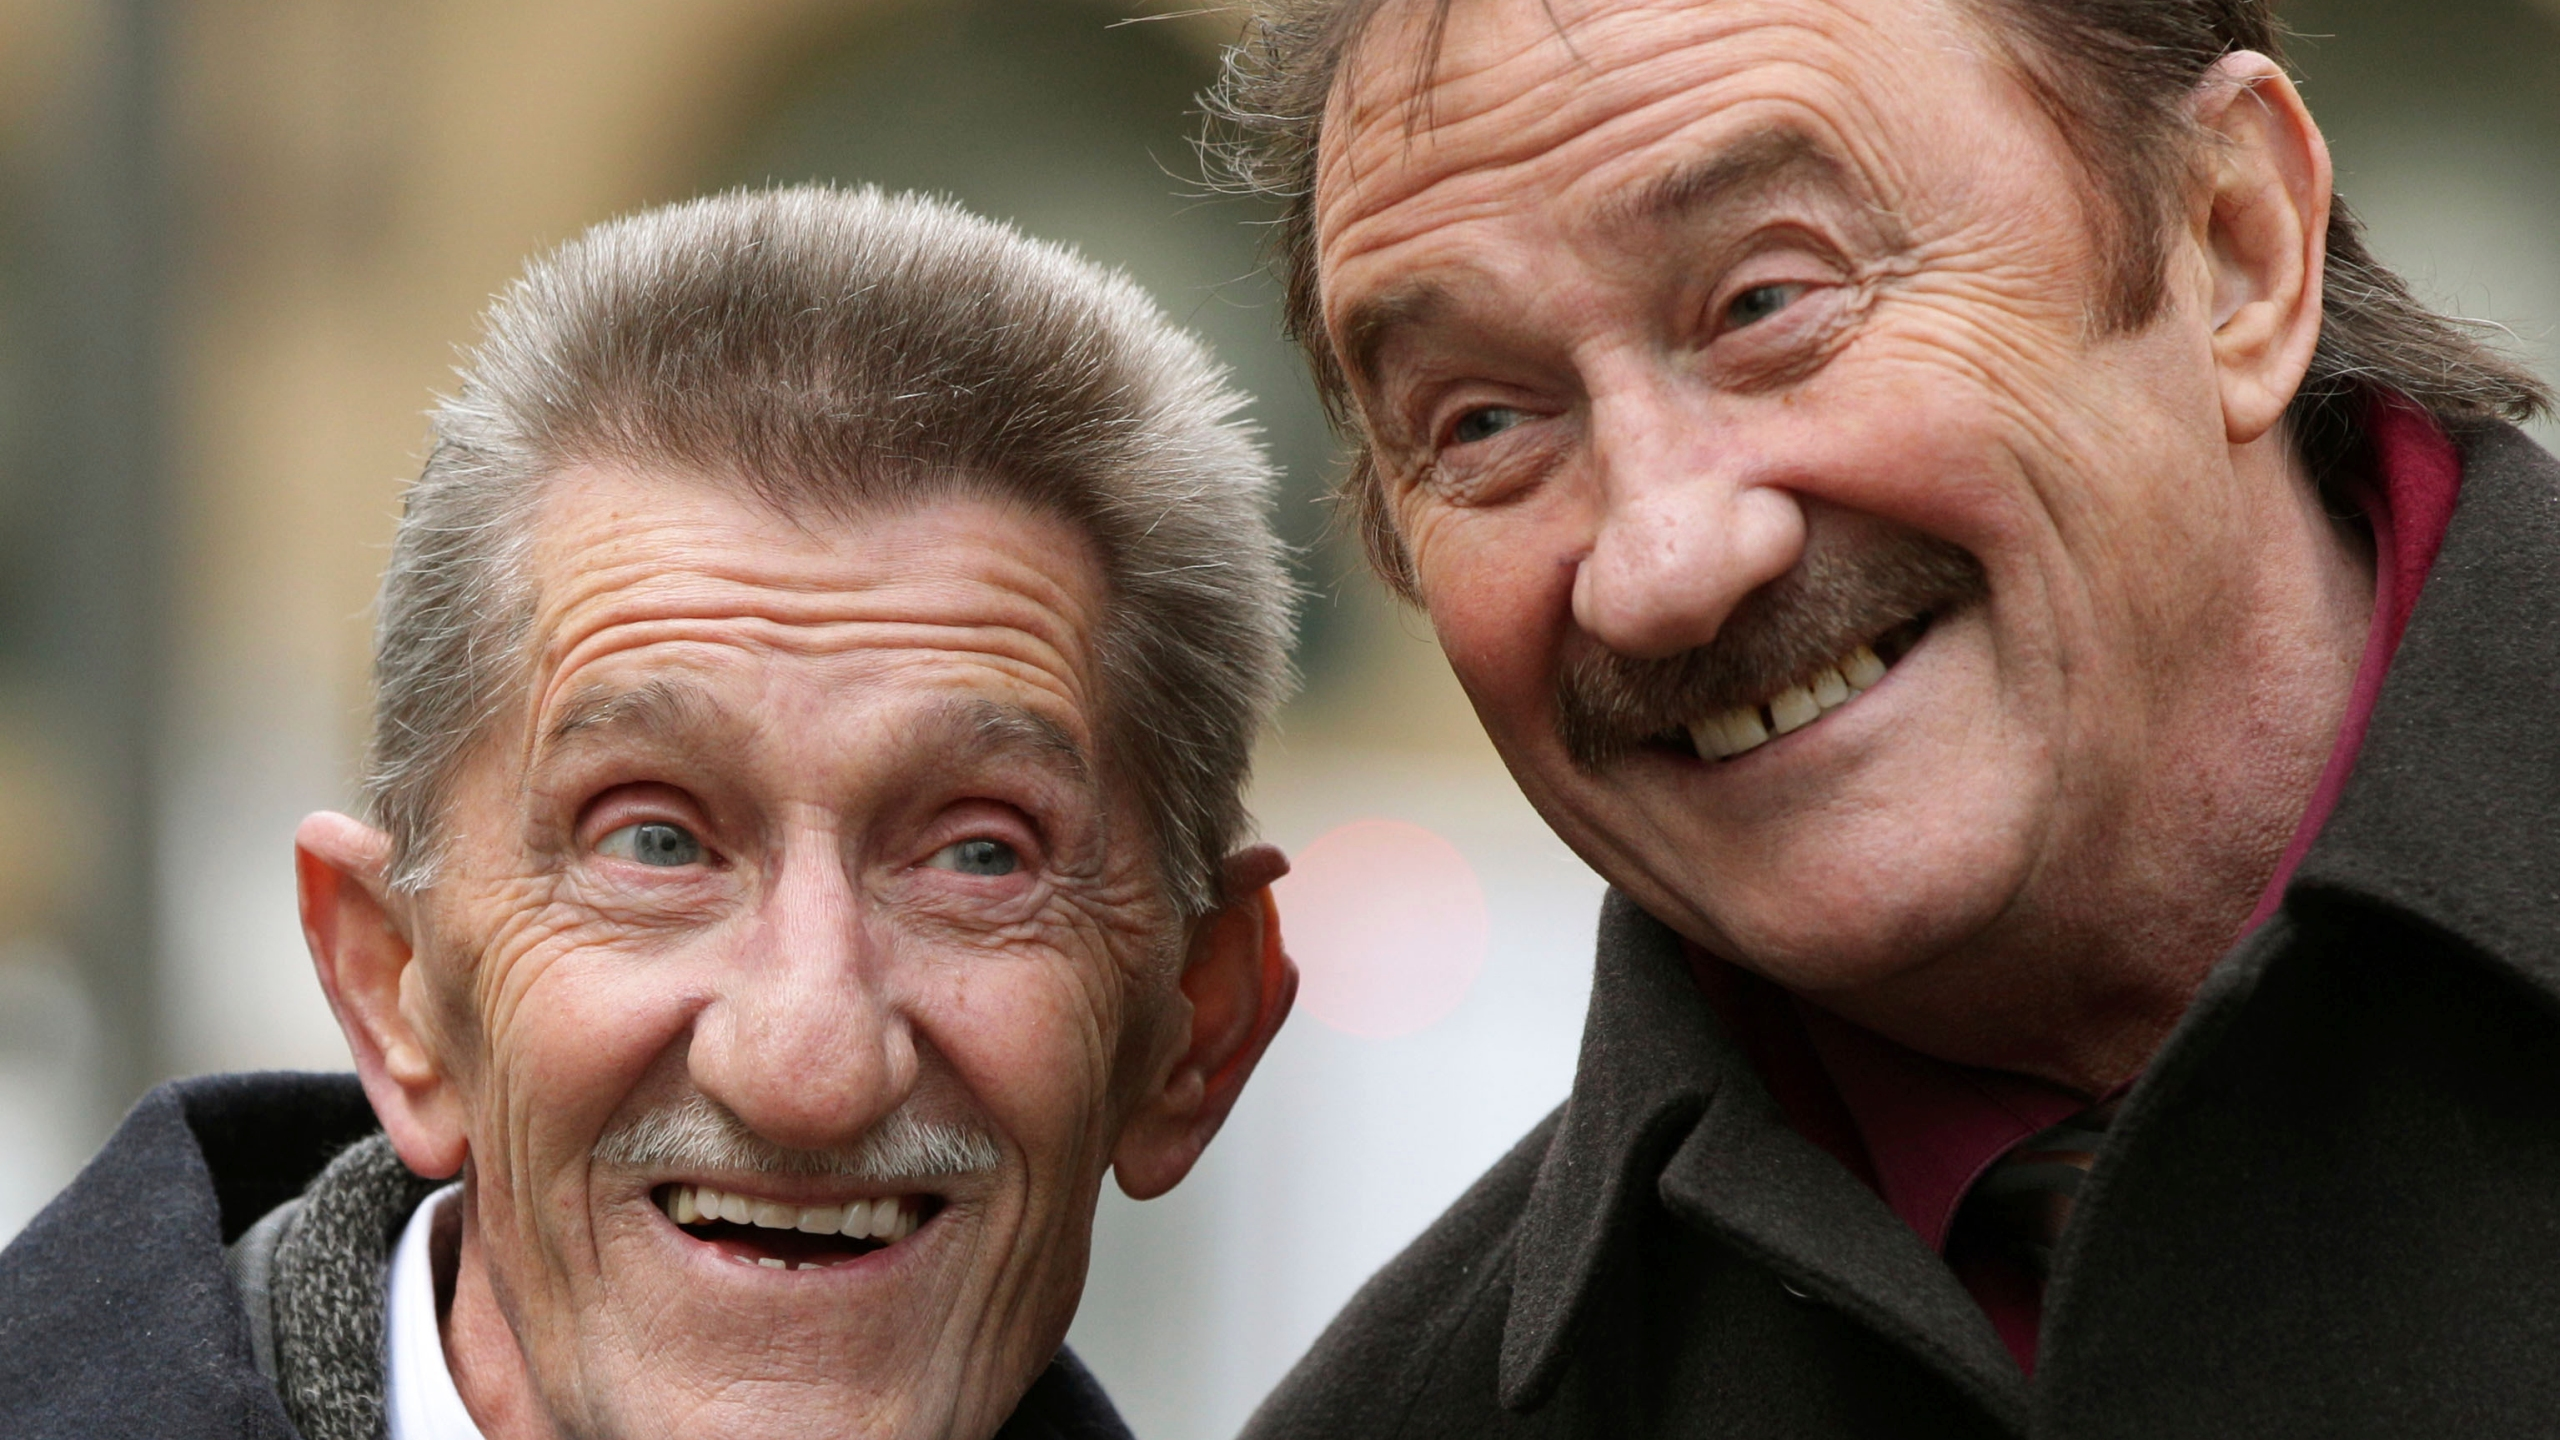 Britain_Obit_Chuckle_Brother_09111-159532.jpg35184826